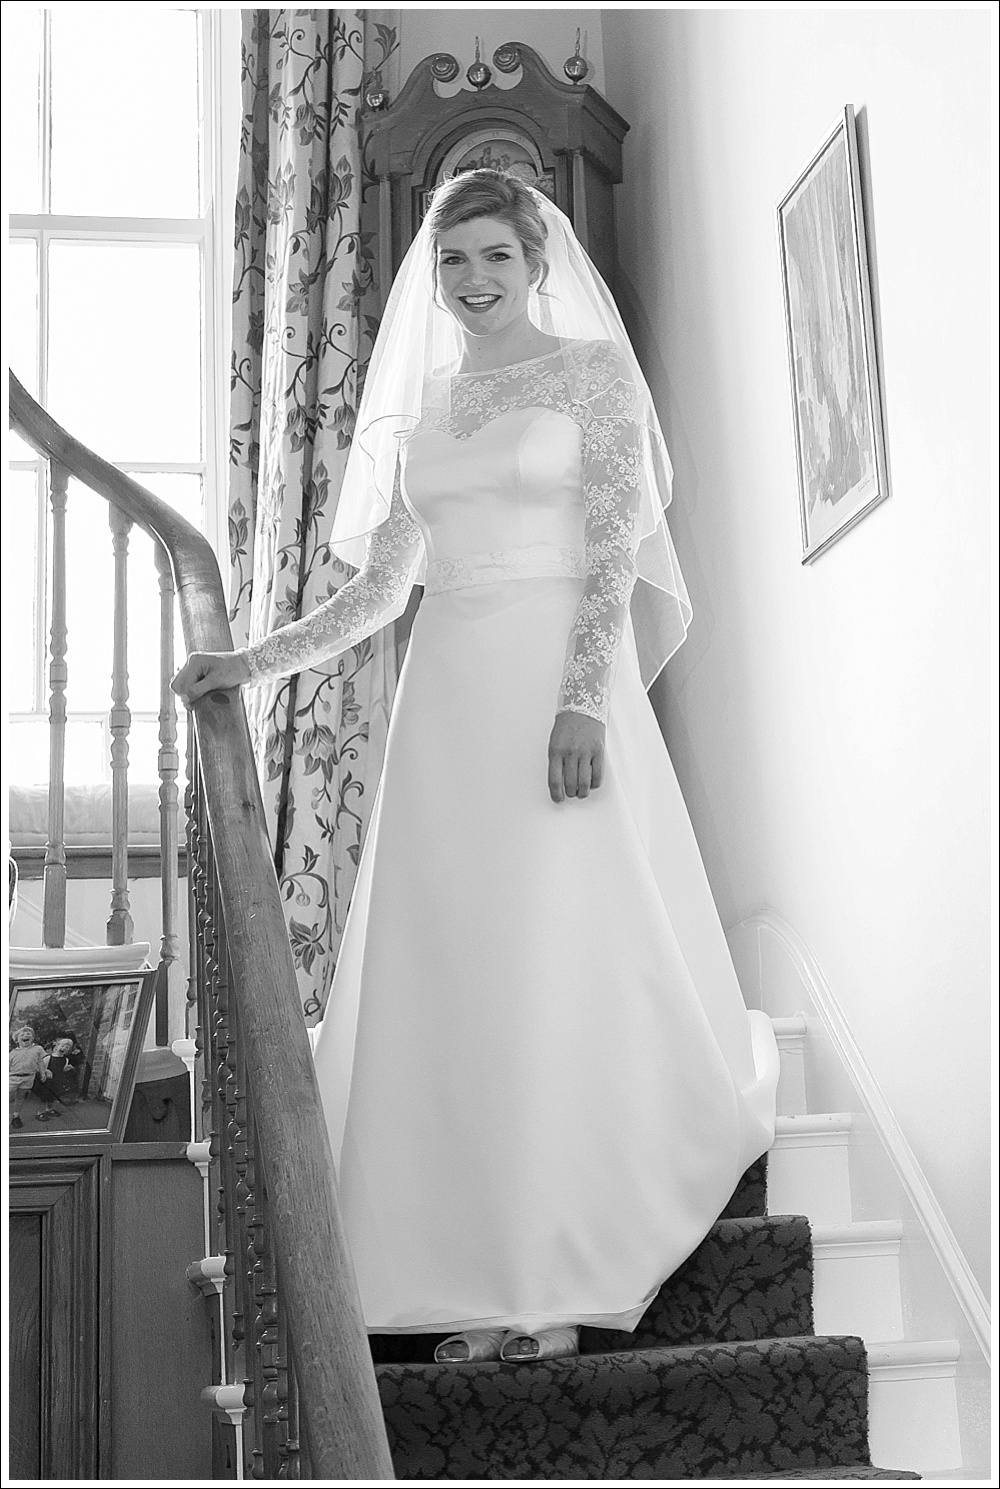 Bride coming down stairs before wedding